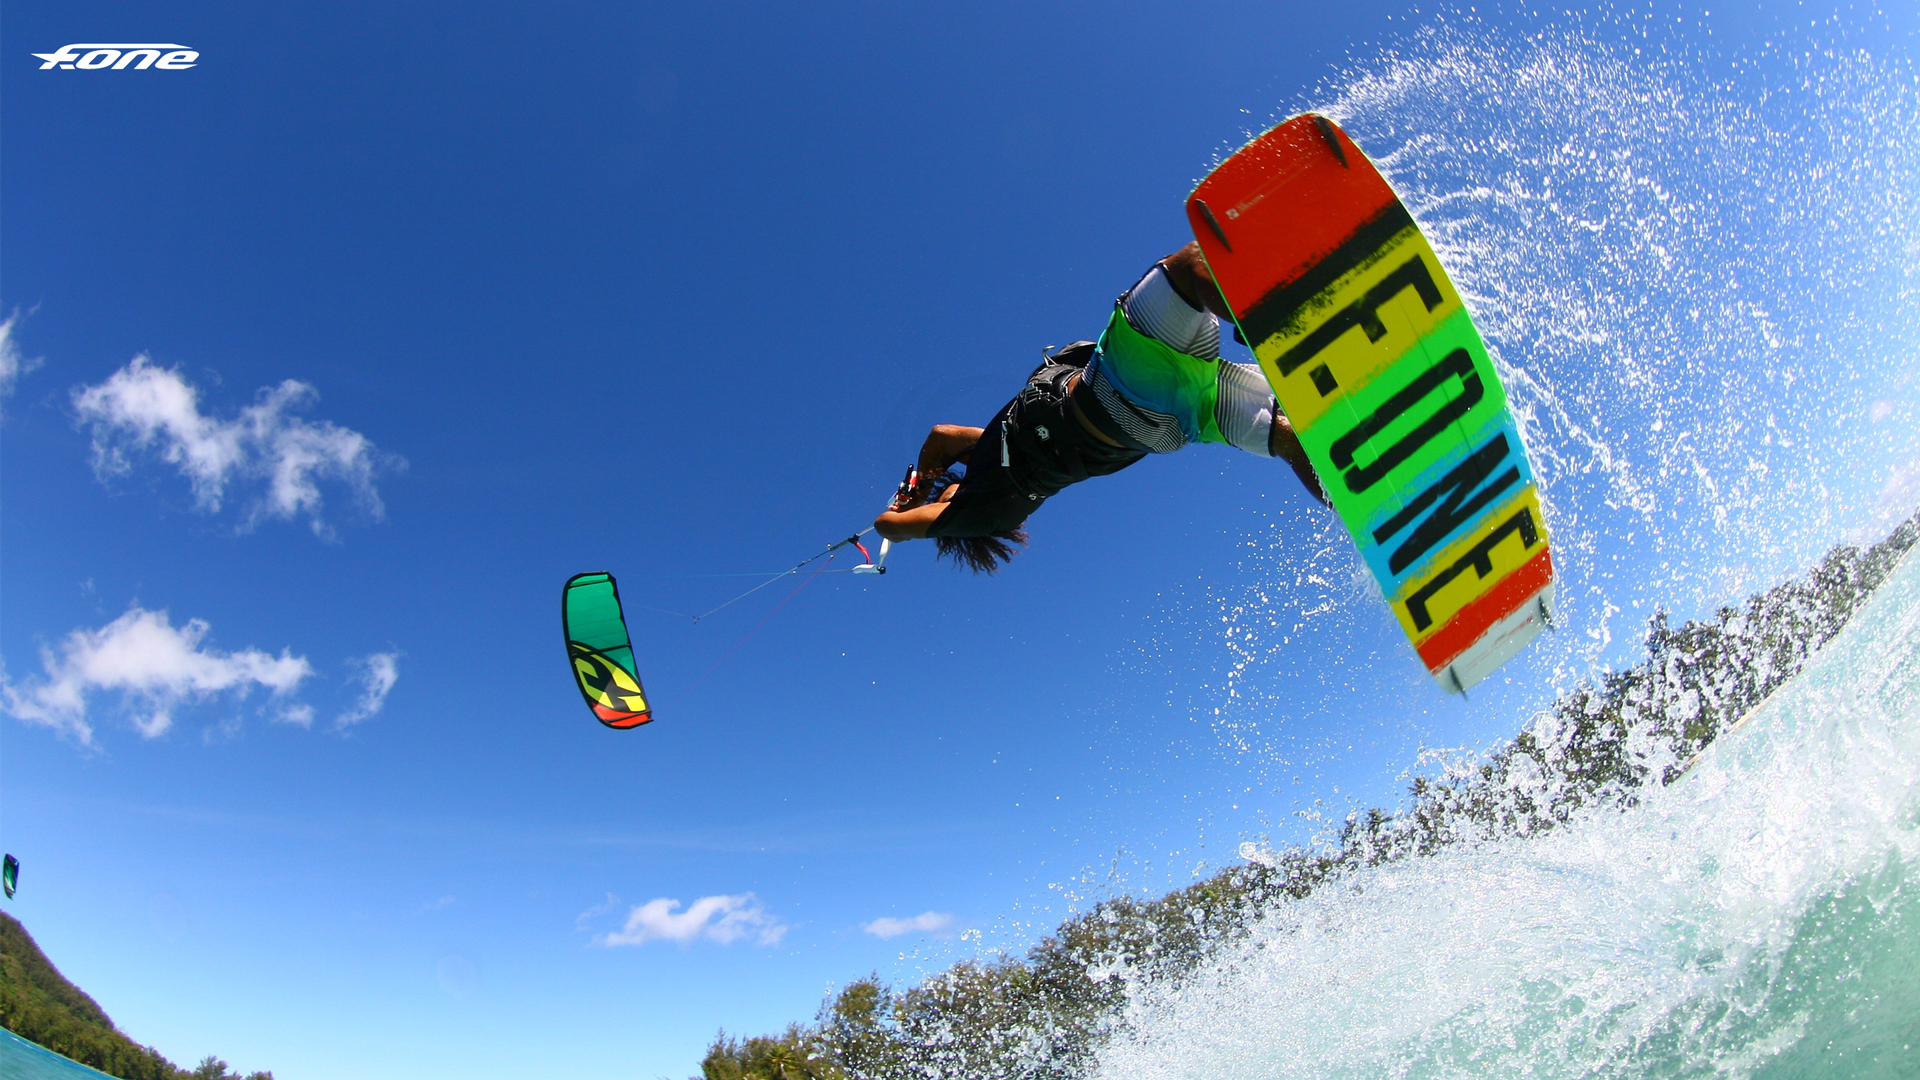 kitesurf wallpaper image - Jump on the 2015 F-One Acid HRD Carbon series kiteboard and bandit kite.  - in resolution: High Definition - HD 16:9 1920 X 1080